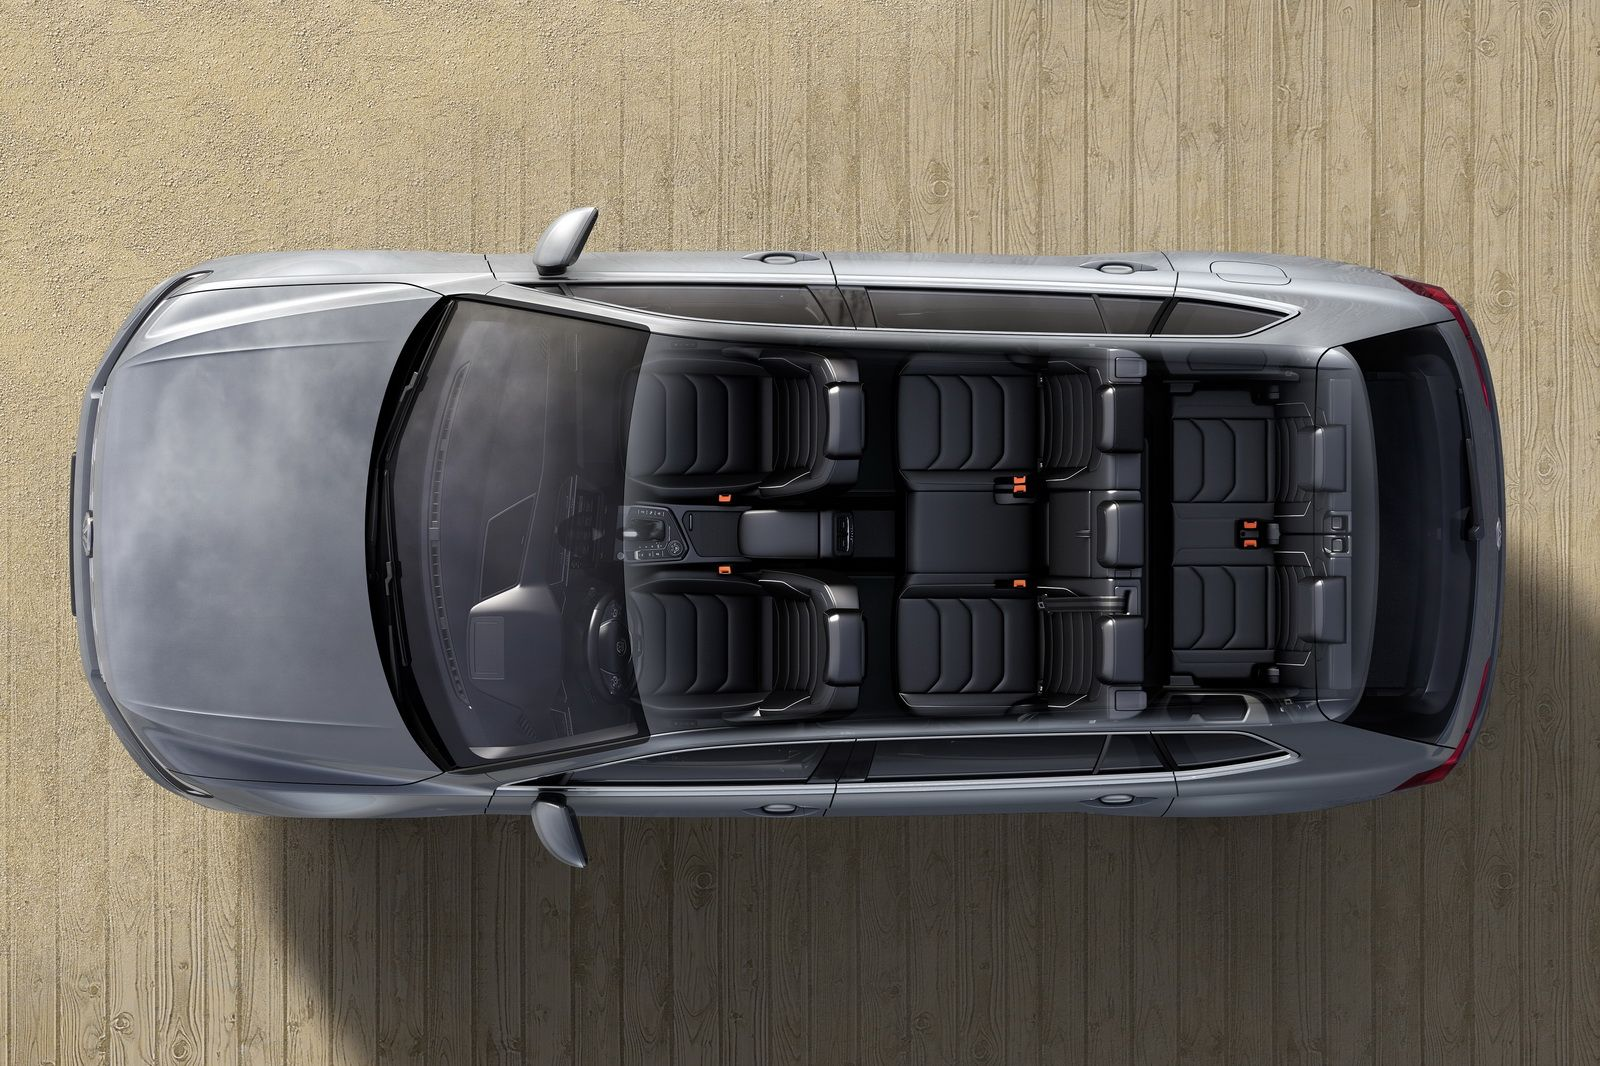 Europe S New Vw Tiguan Allspace With 7 Seats Detailed Ahead Of Geneva Carscoops Volkswagen Concept Cars New Cars